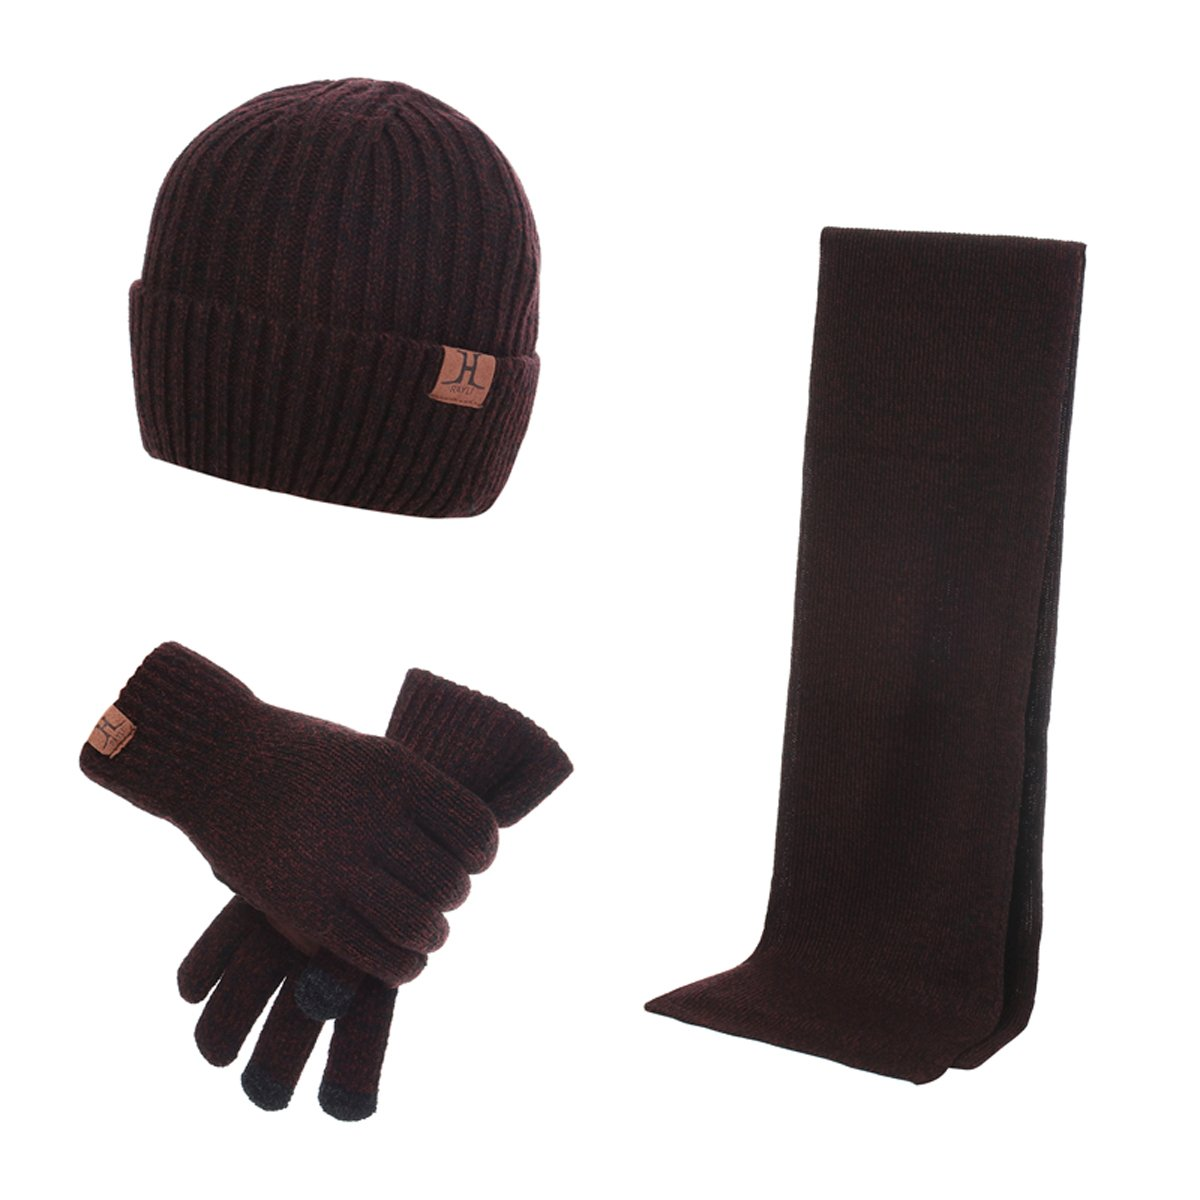 JOYEBUY Fashion Warm Winter Men 3 PCS Knitted Set Knit Hat + Long Scarf + Touch Screen Gloves One Size) 3pcsmen91